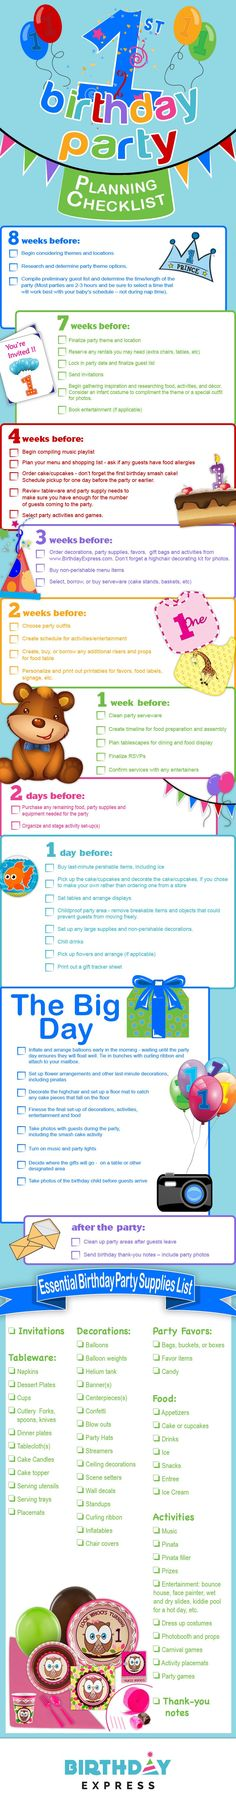 first birthday party planning checklist tips tipsographic